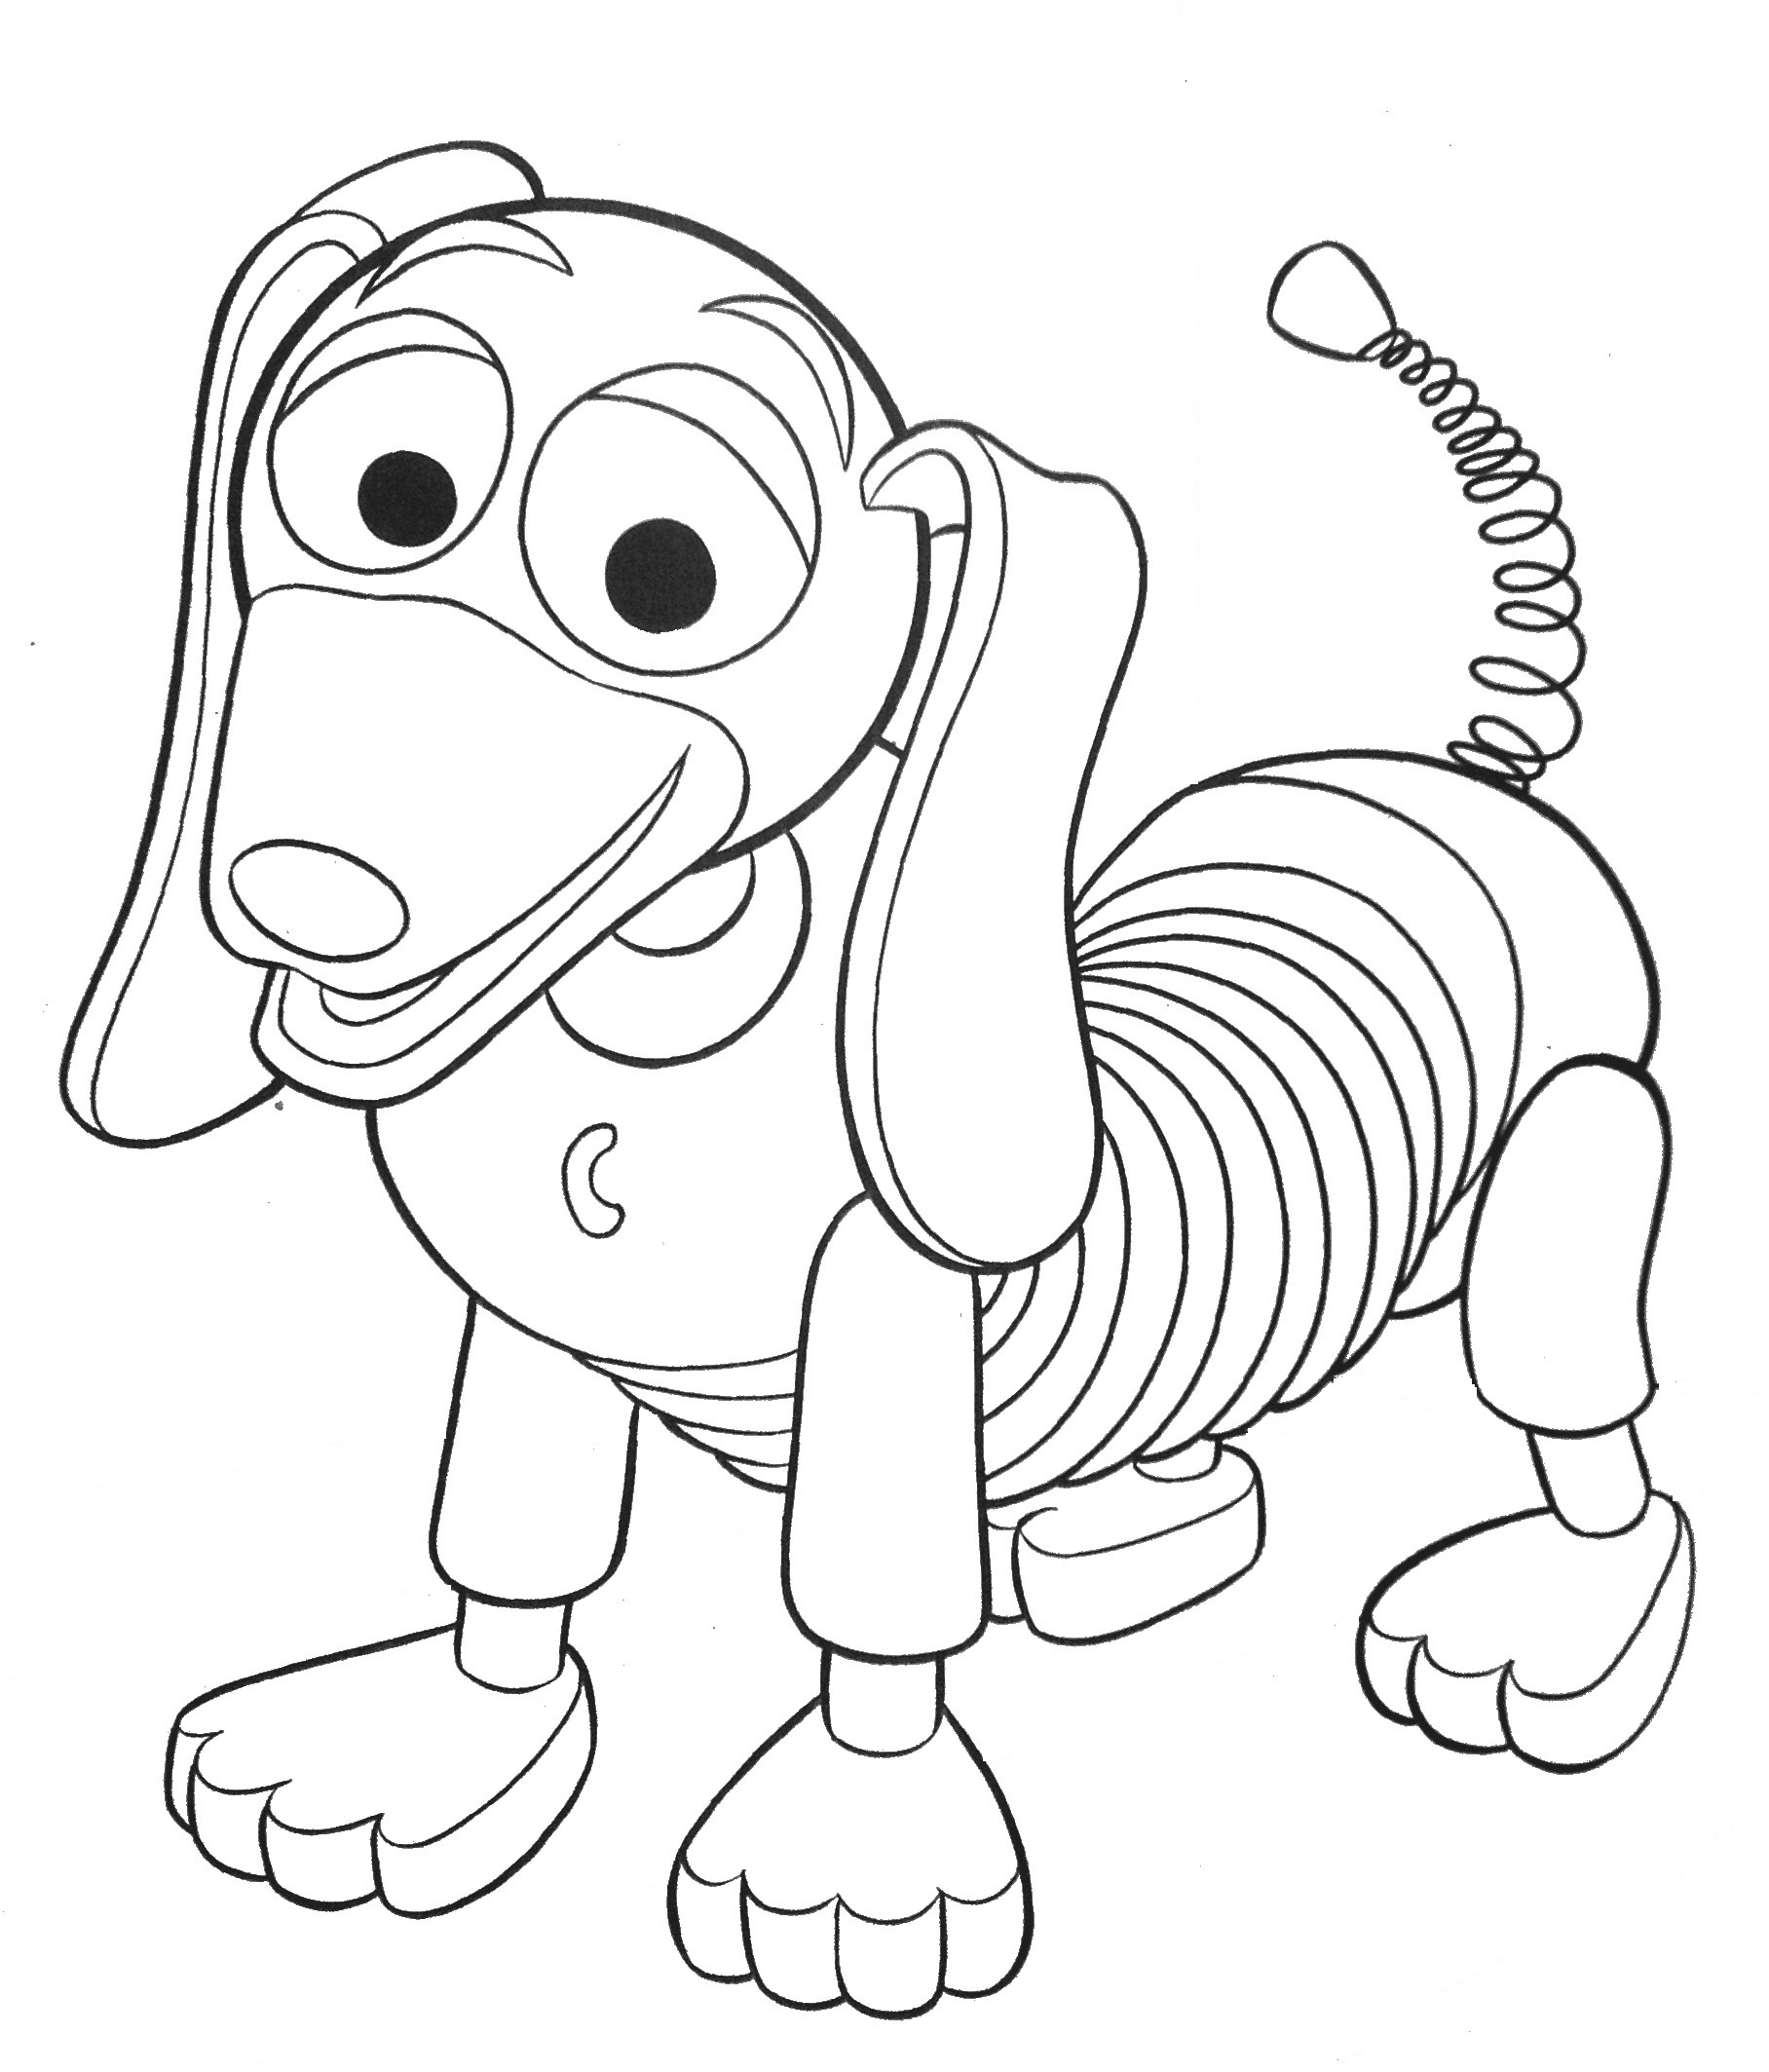 coloring toy story printables toy story coloring pages woody at getcoloringscom free toy coloring printables story